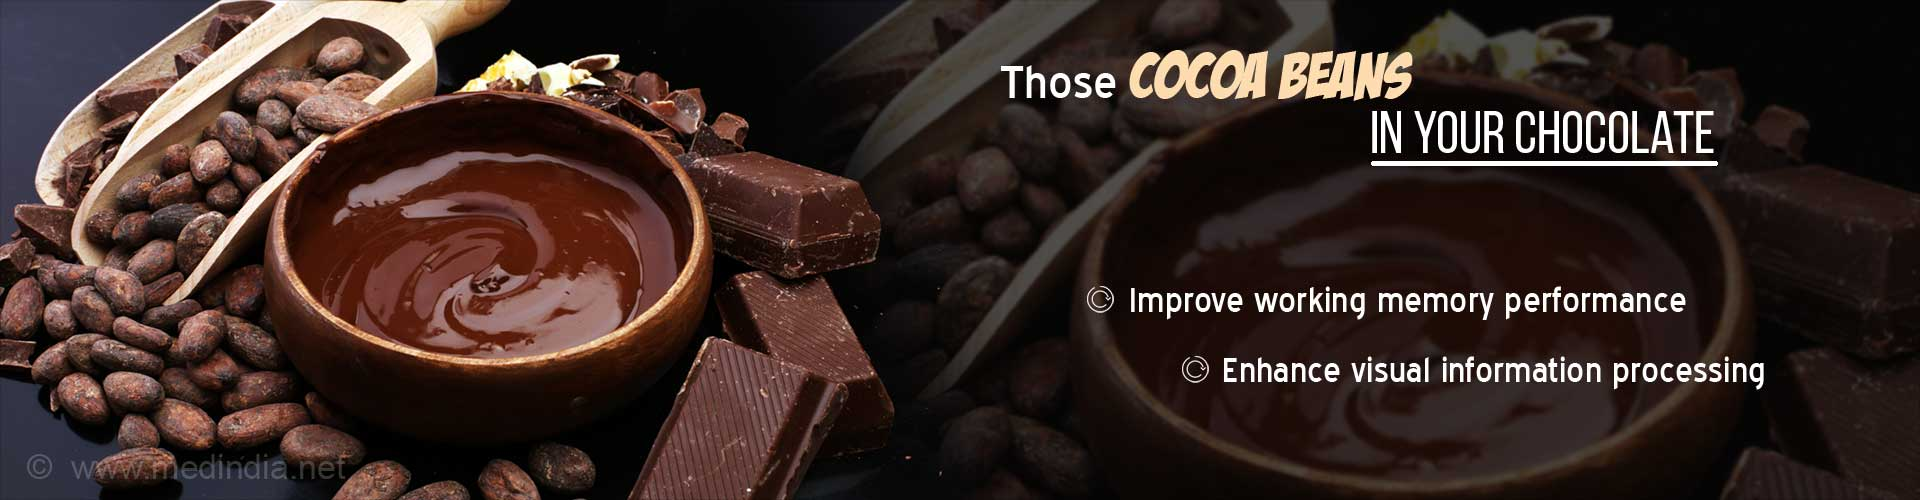 Munch On Your Favorite Chocolate For Better Brain Function